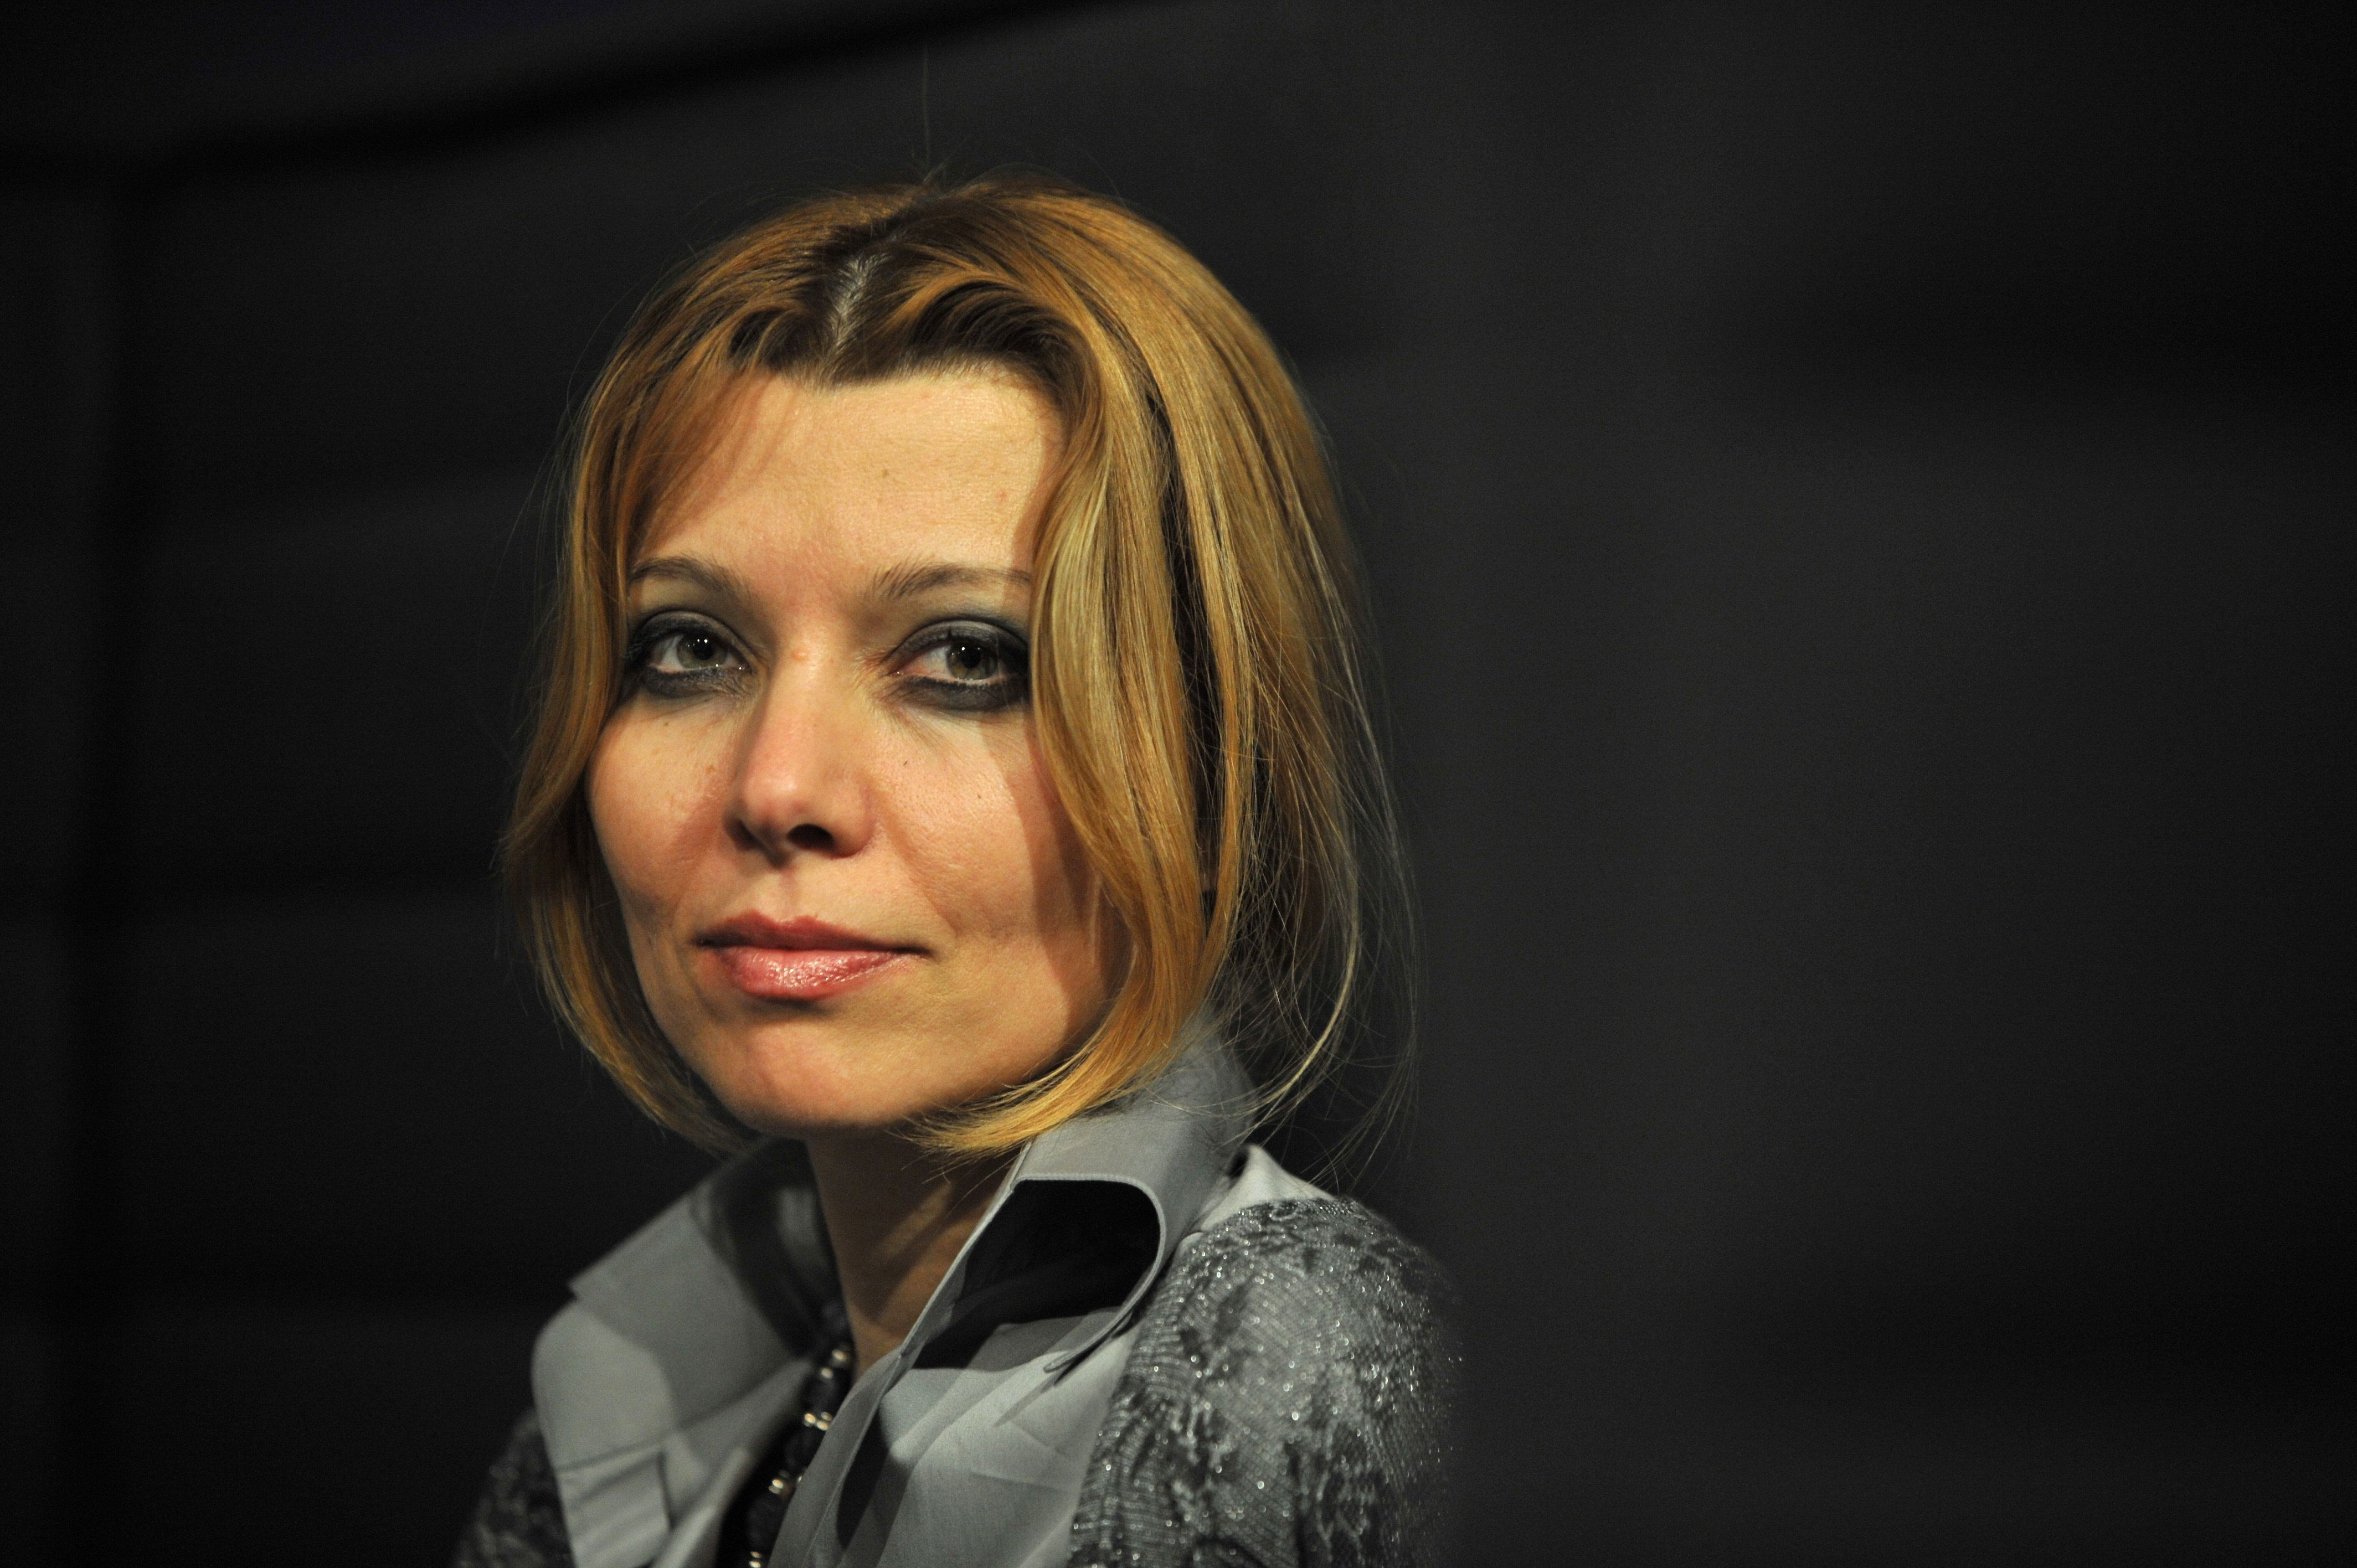 Author Elif Shafak told The WorldPost that Turkey is an increasingly polarized country.